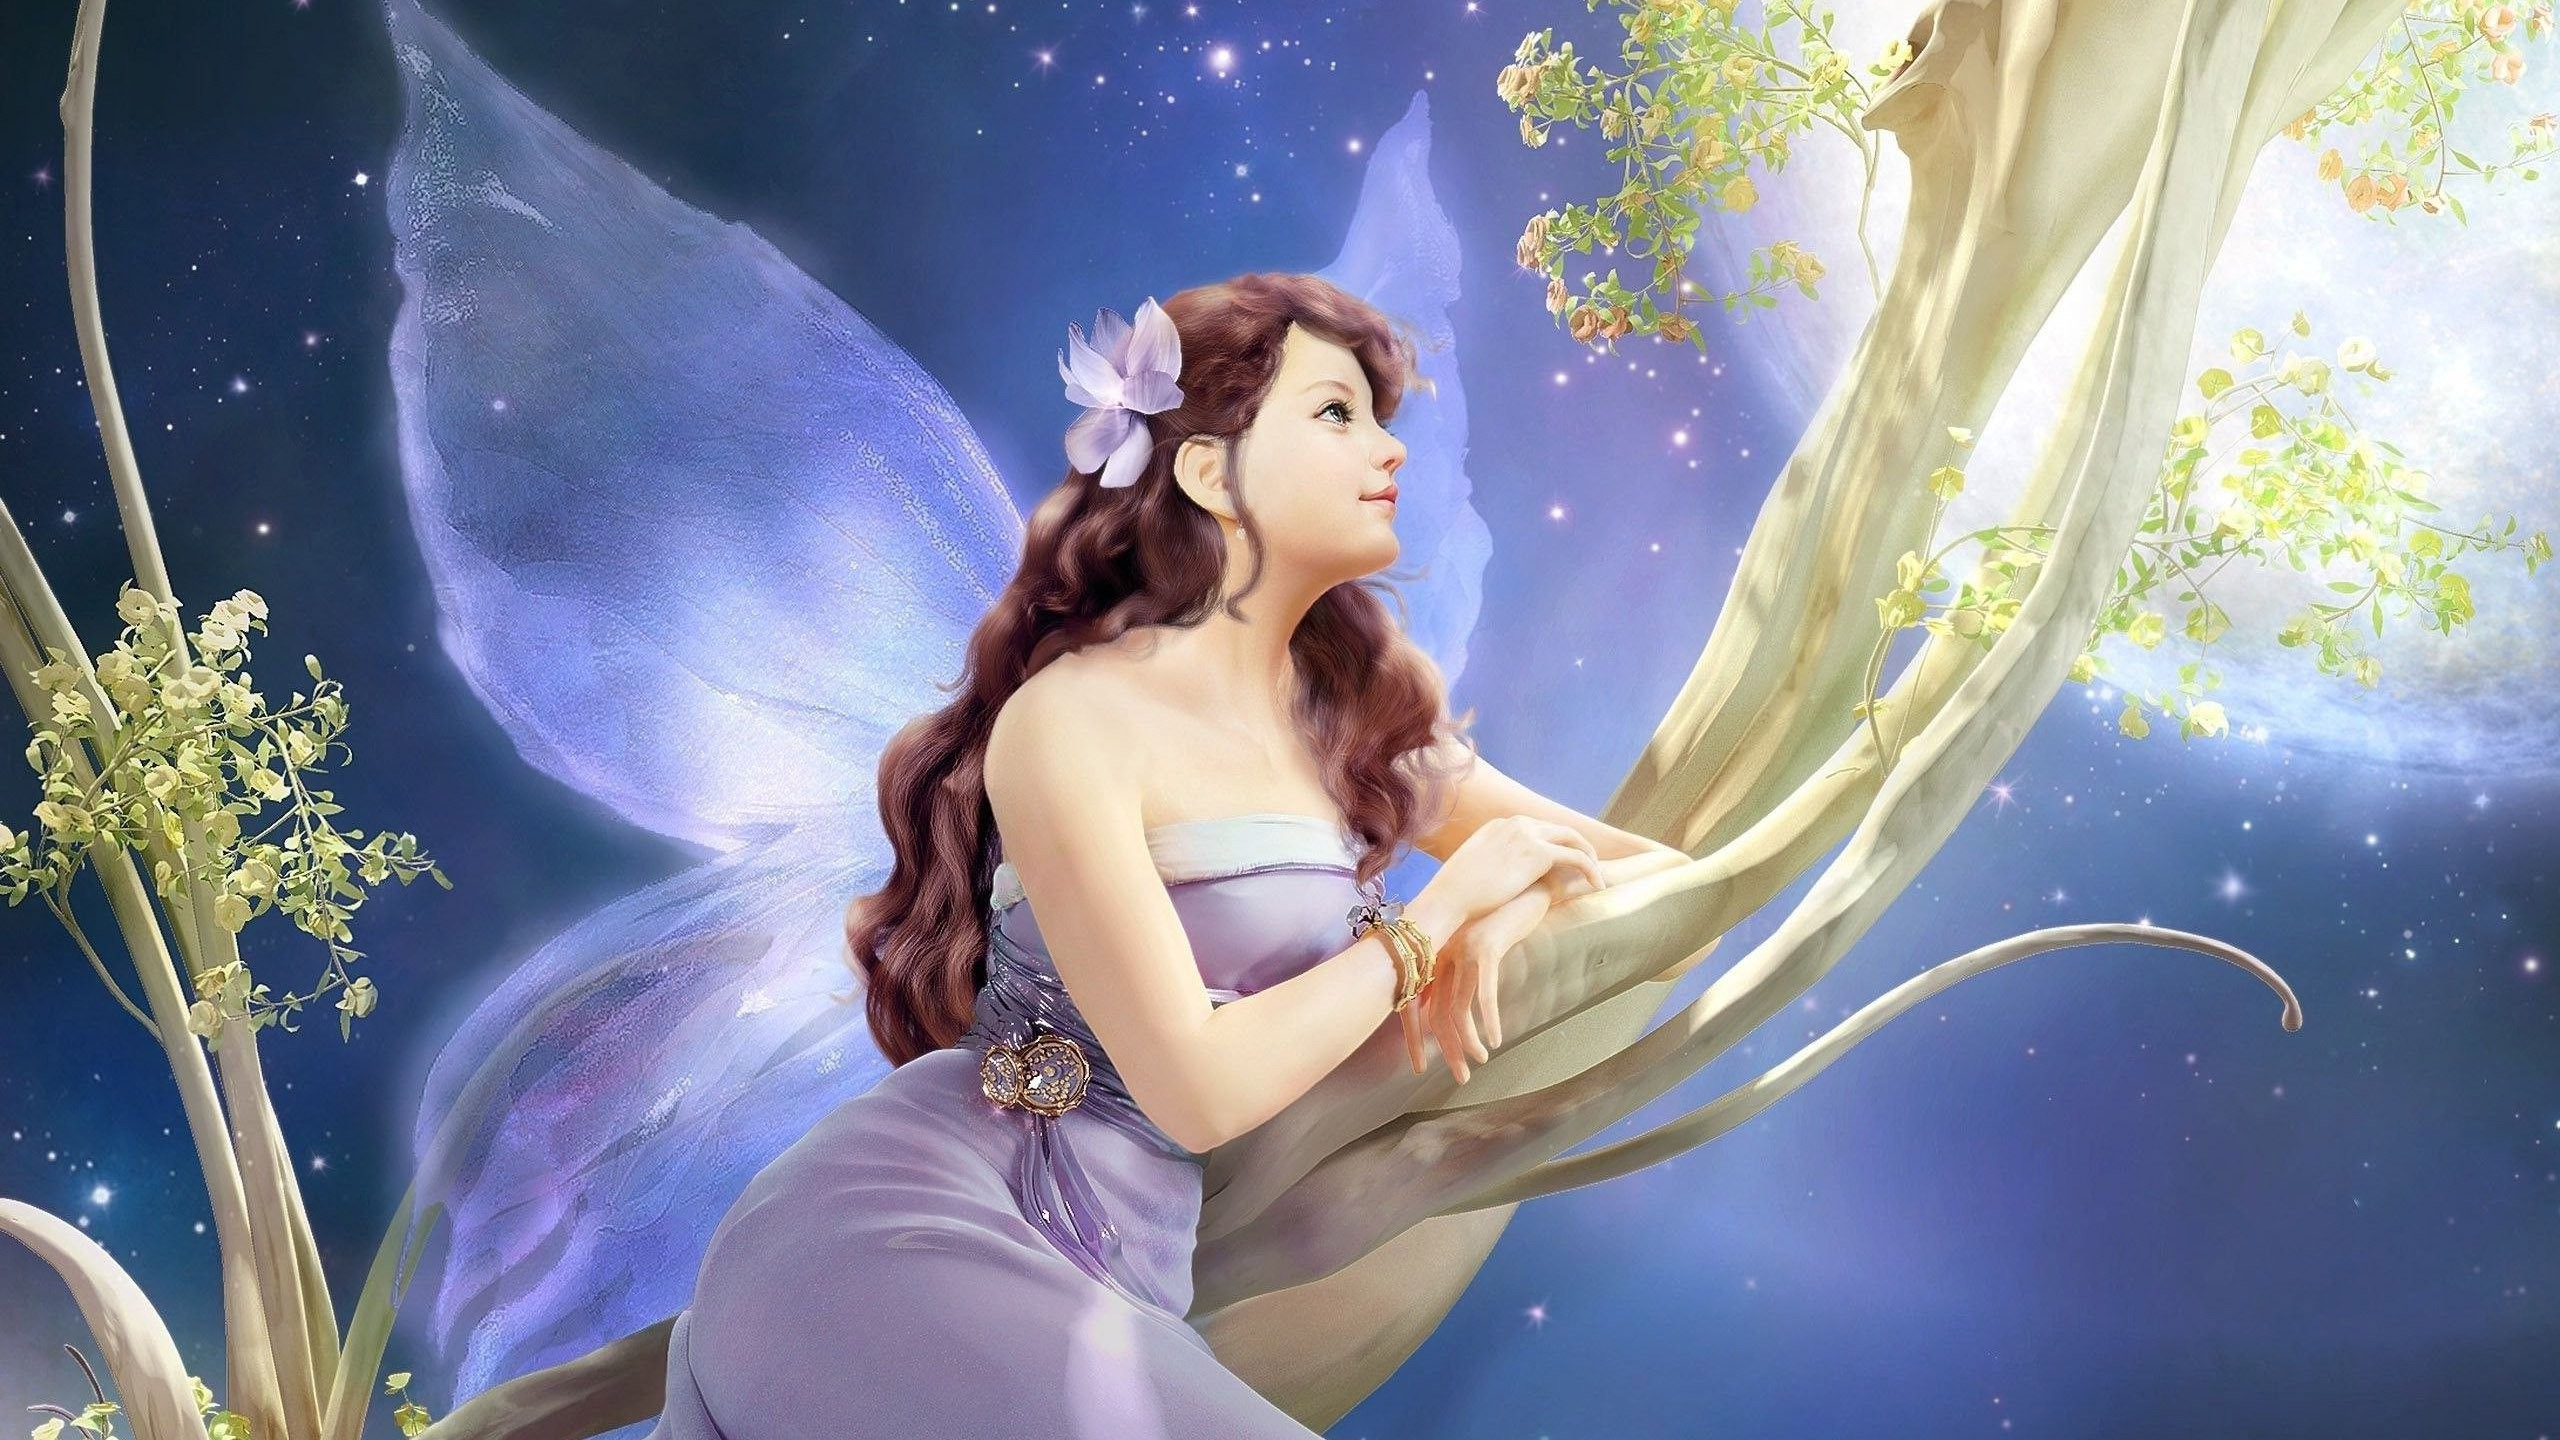 Wallpaper Of Cute Barbie Girl Pretty Fairy Wallpapers 61 Images